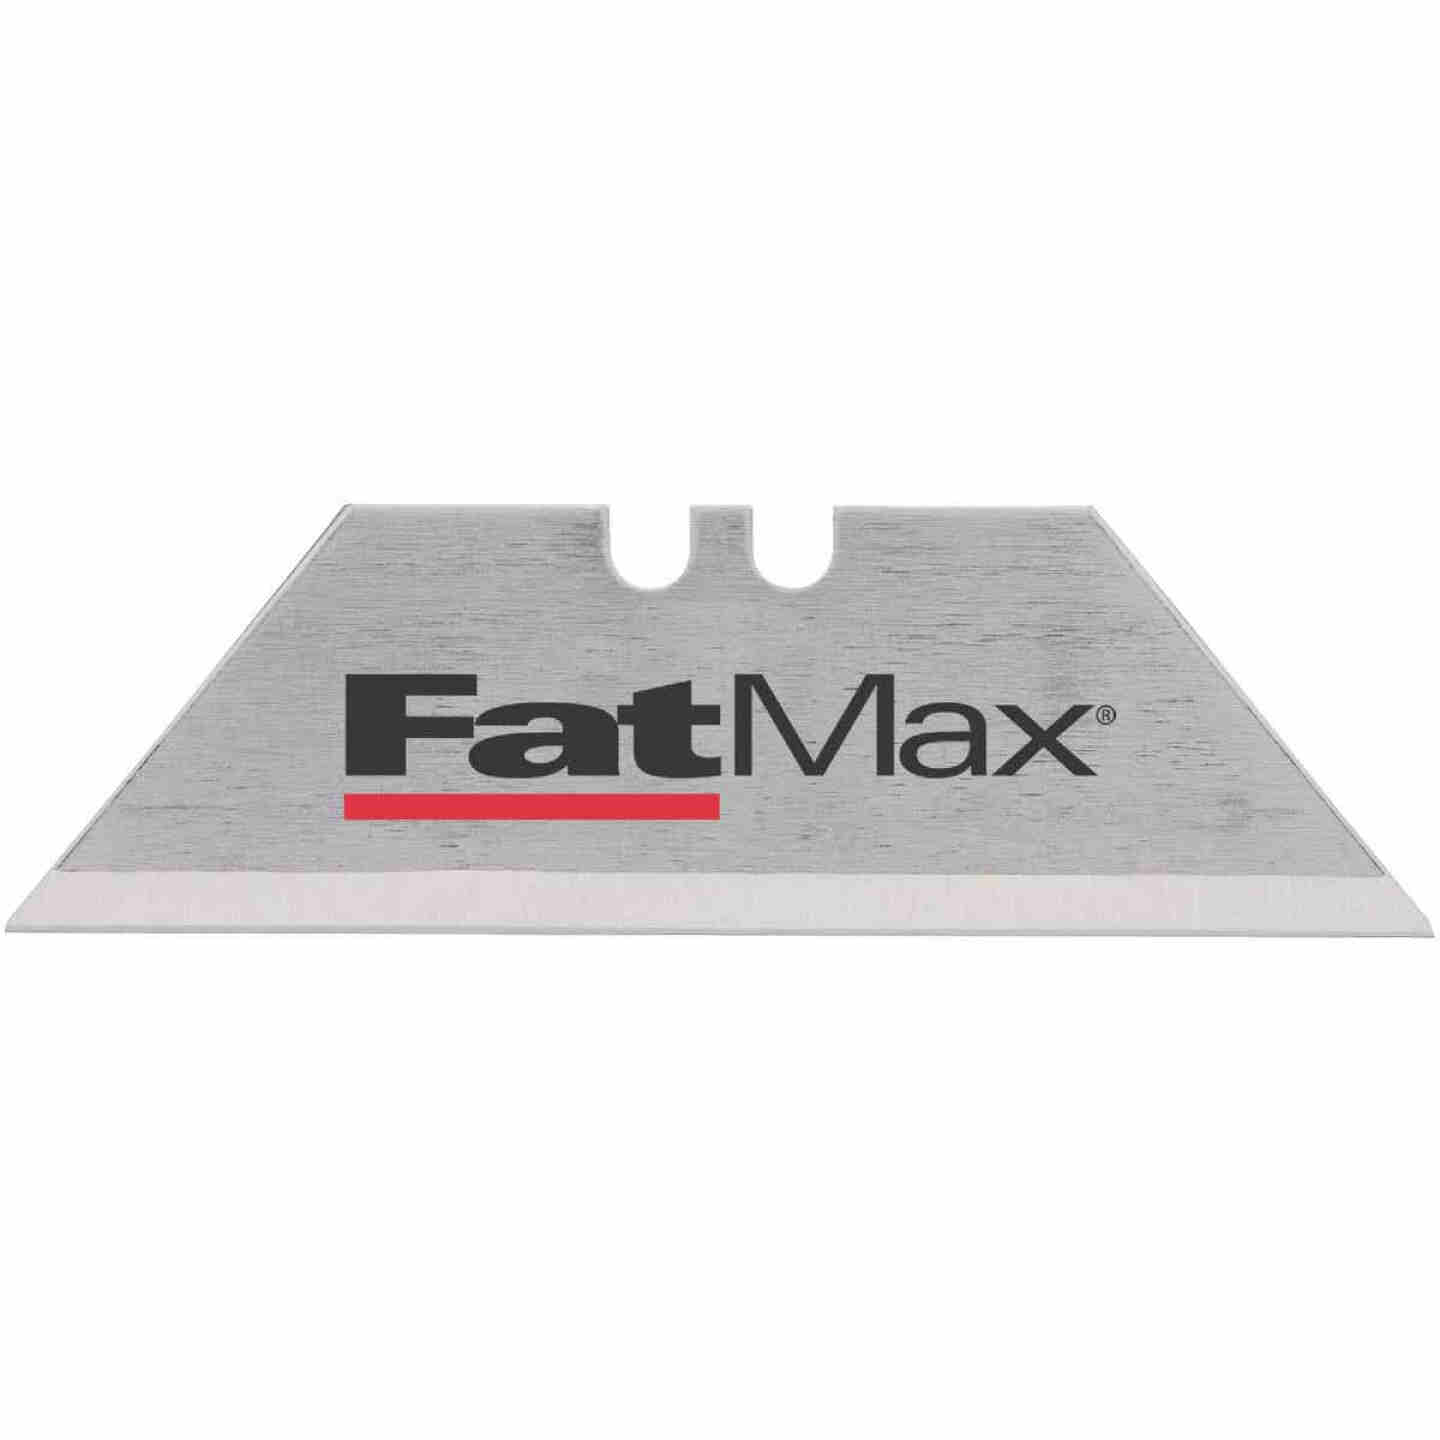 Stanley FatMax 2-Point 2-7/16 In. Utility Knife Blade (5-Pack) Image 1